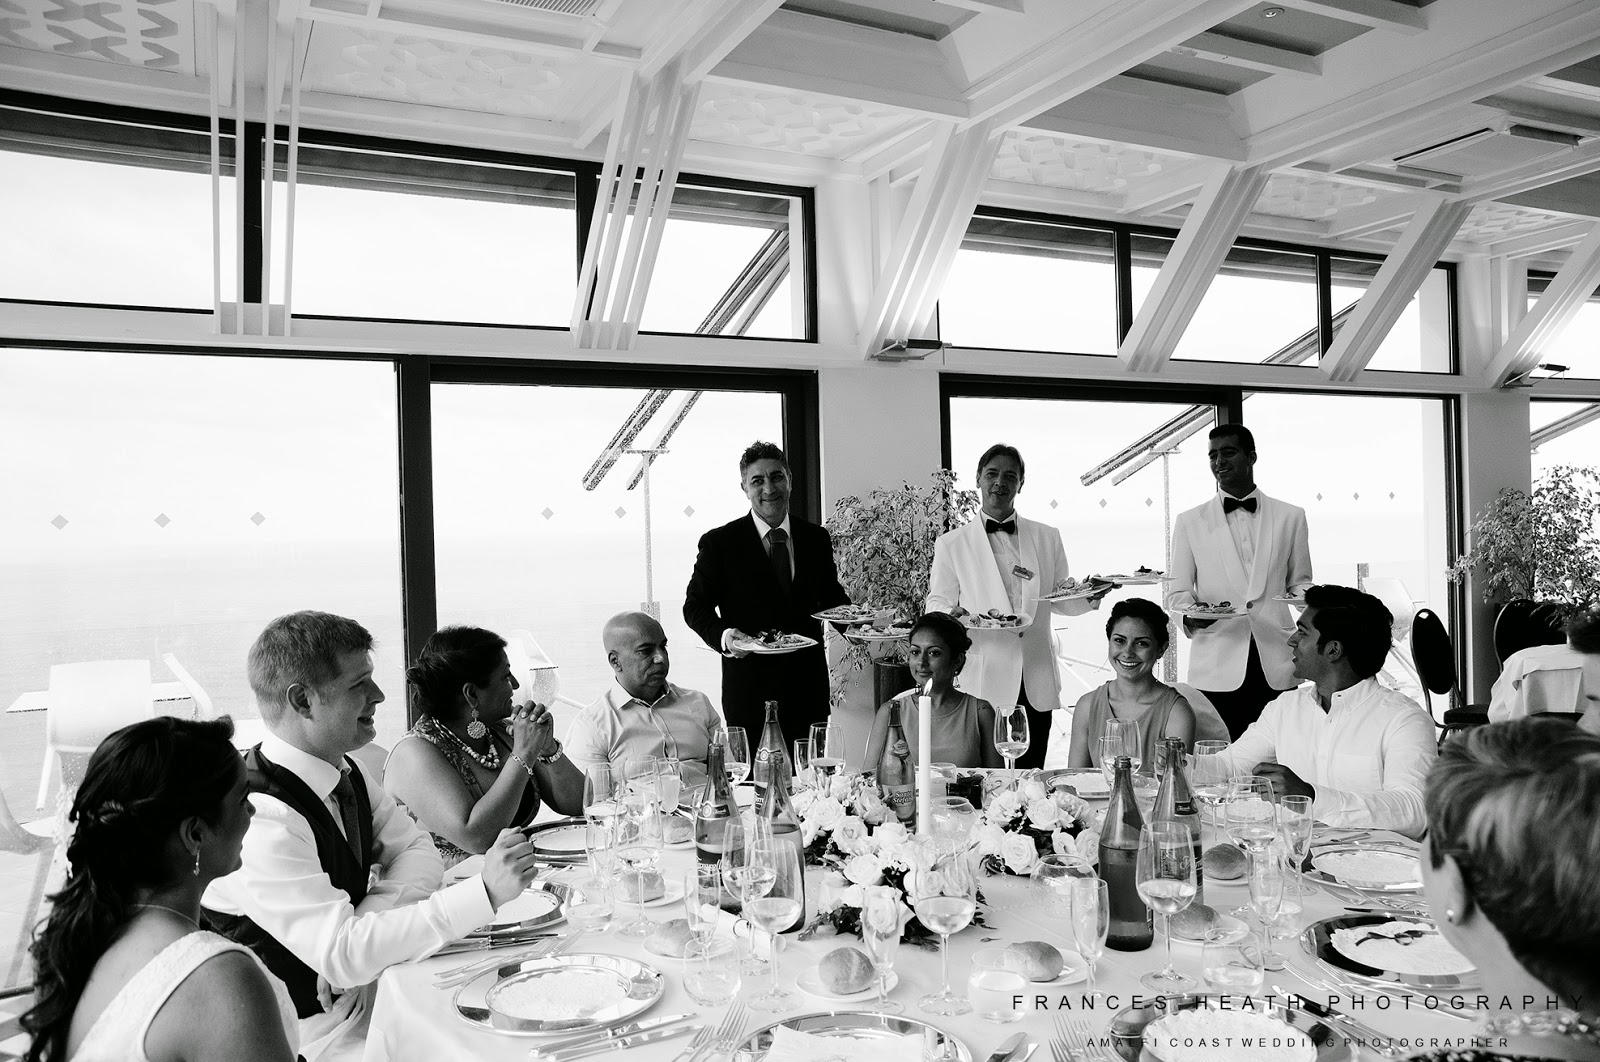 Wedding reception in Amalfi